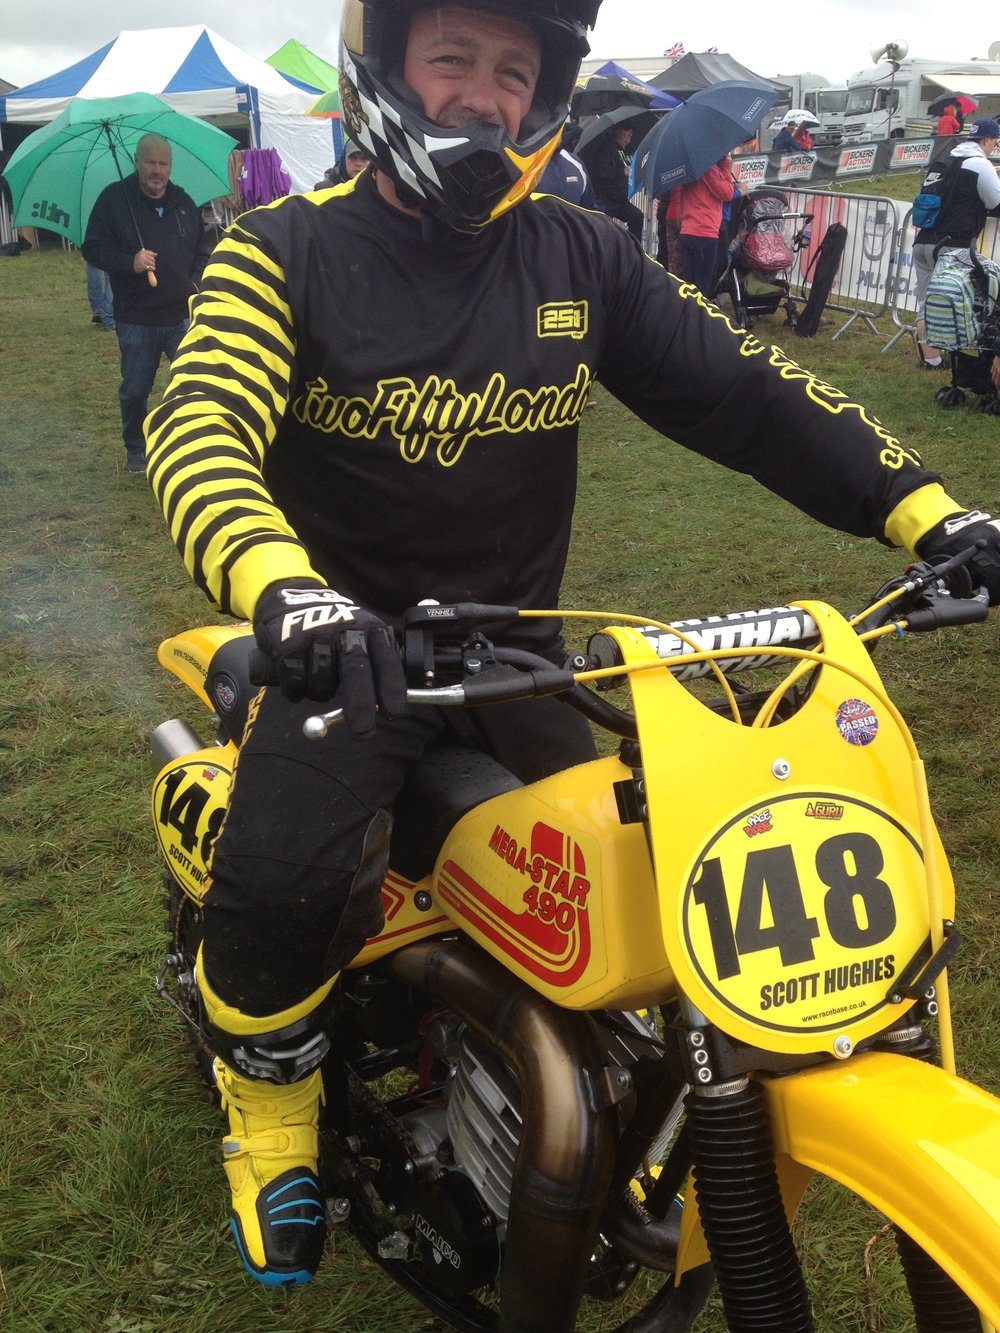 Scott Hughes looking sharp in his new 250 kit!